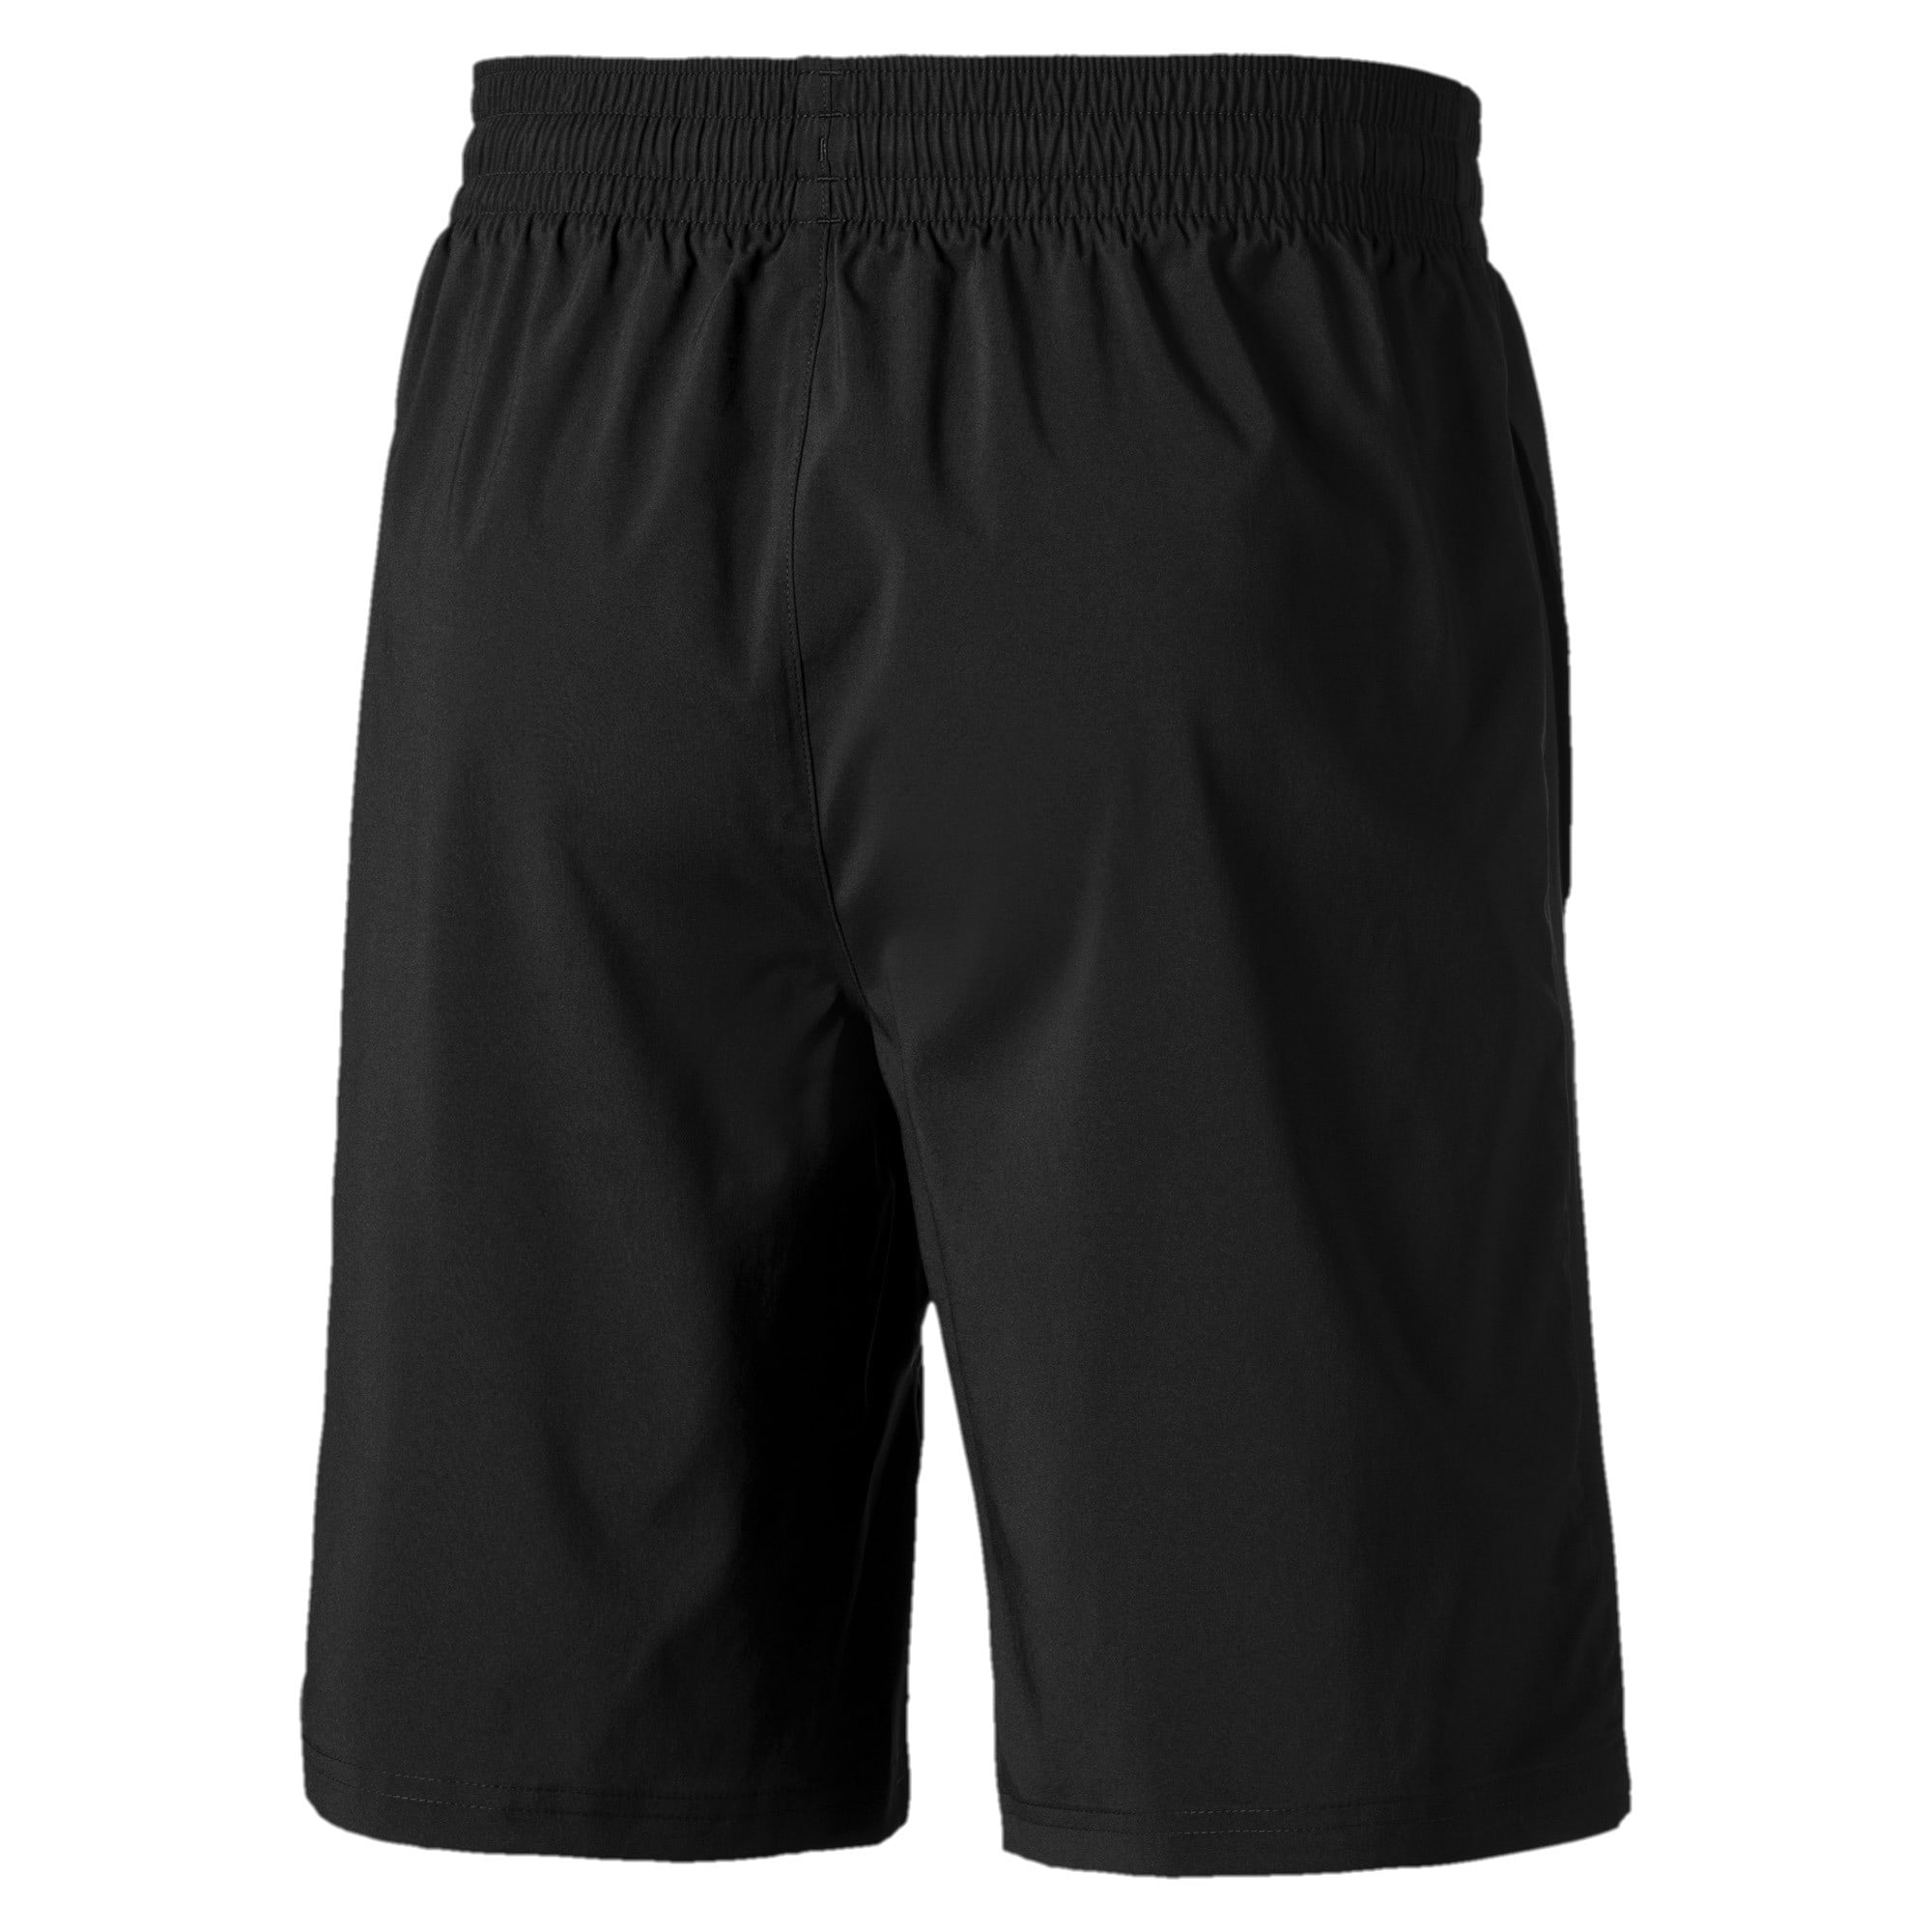 "Energy Woven 9"" Men's Running Shorts, Puma Black, large-IND"